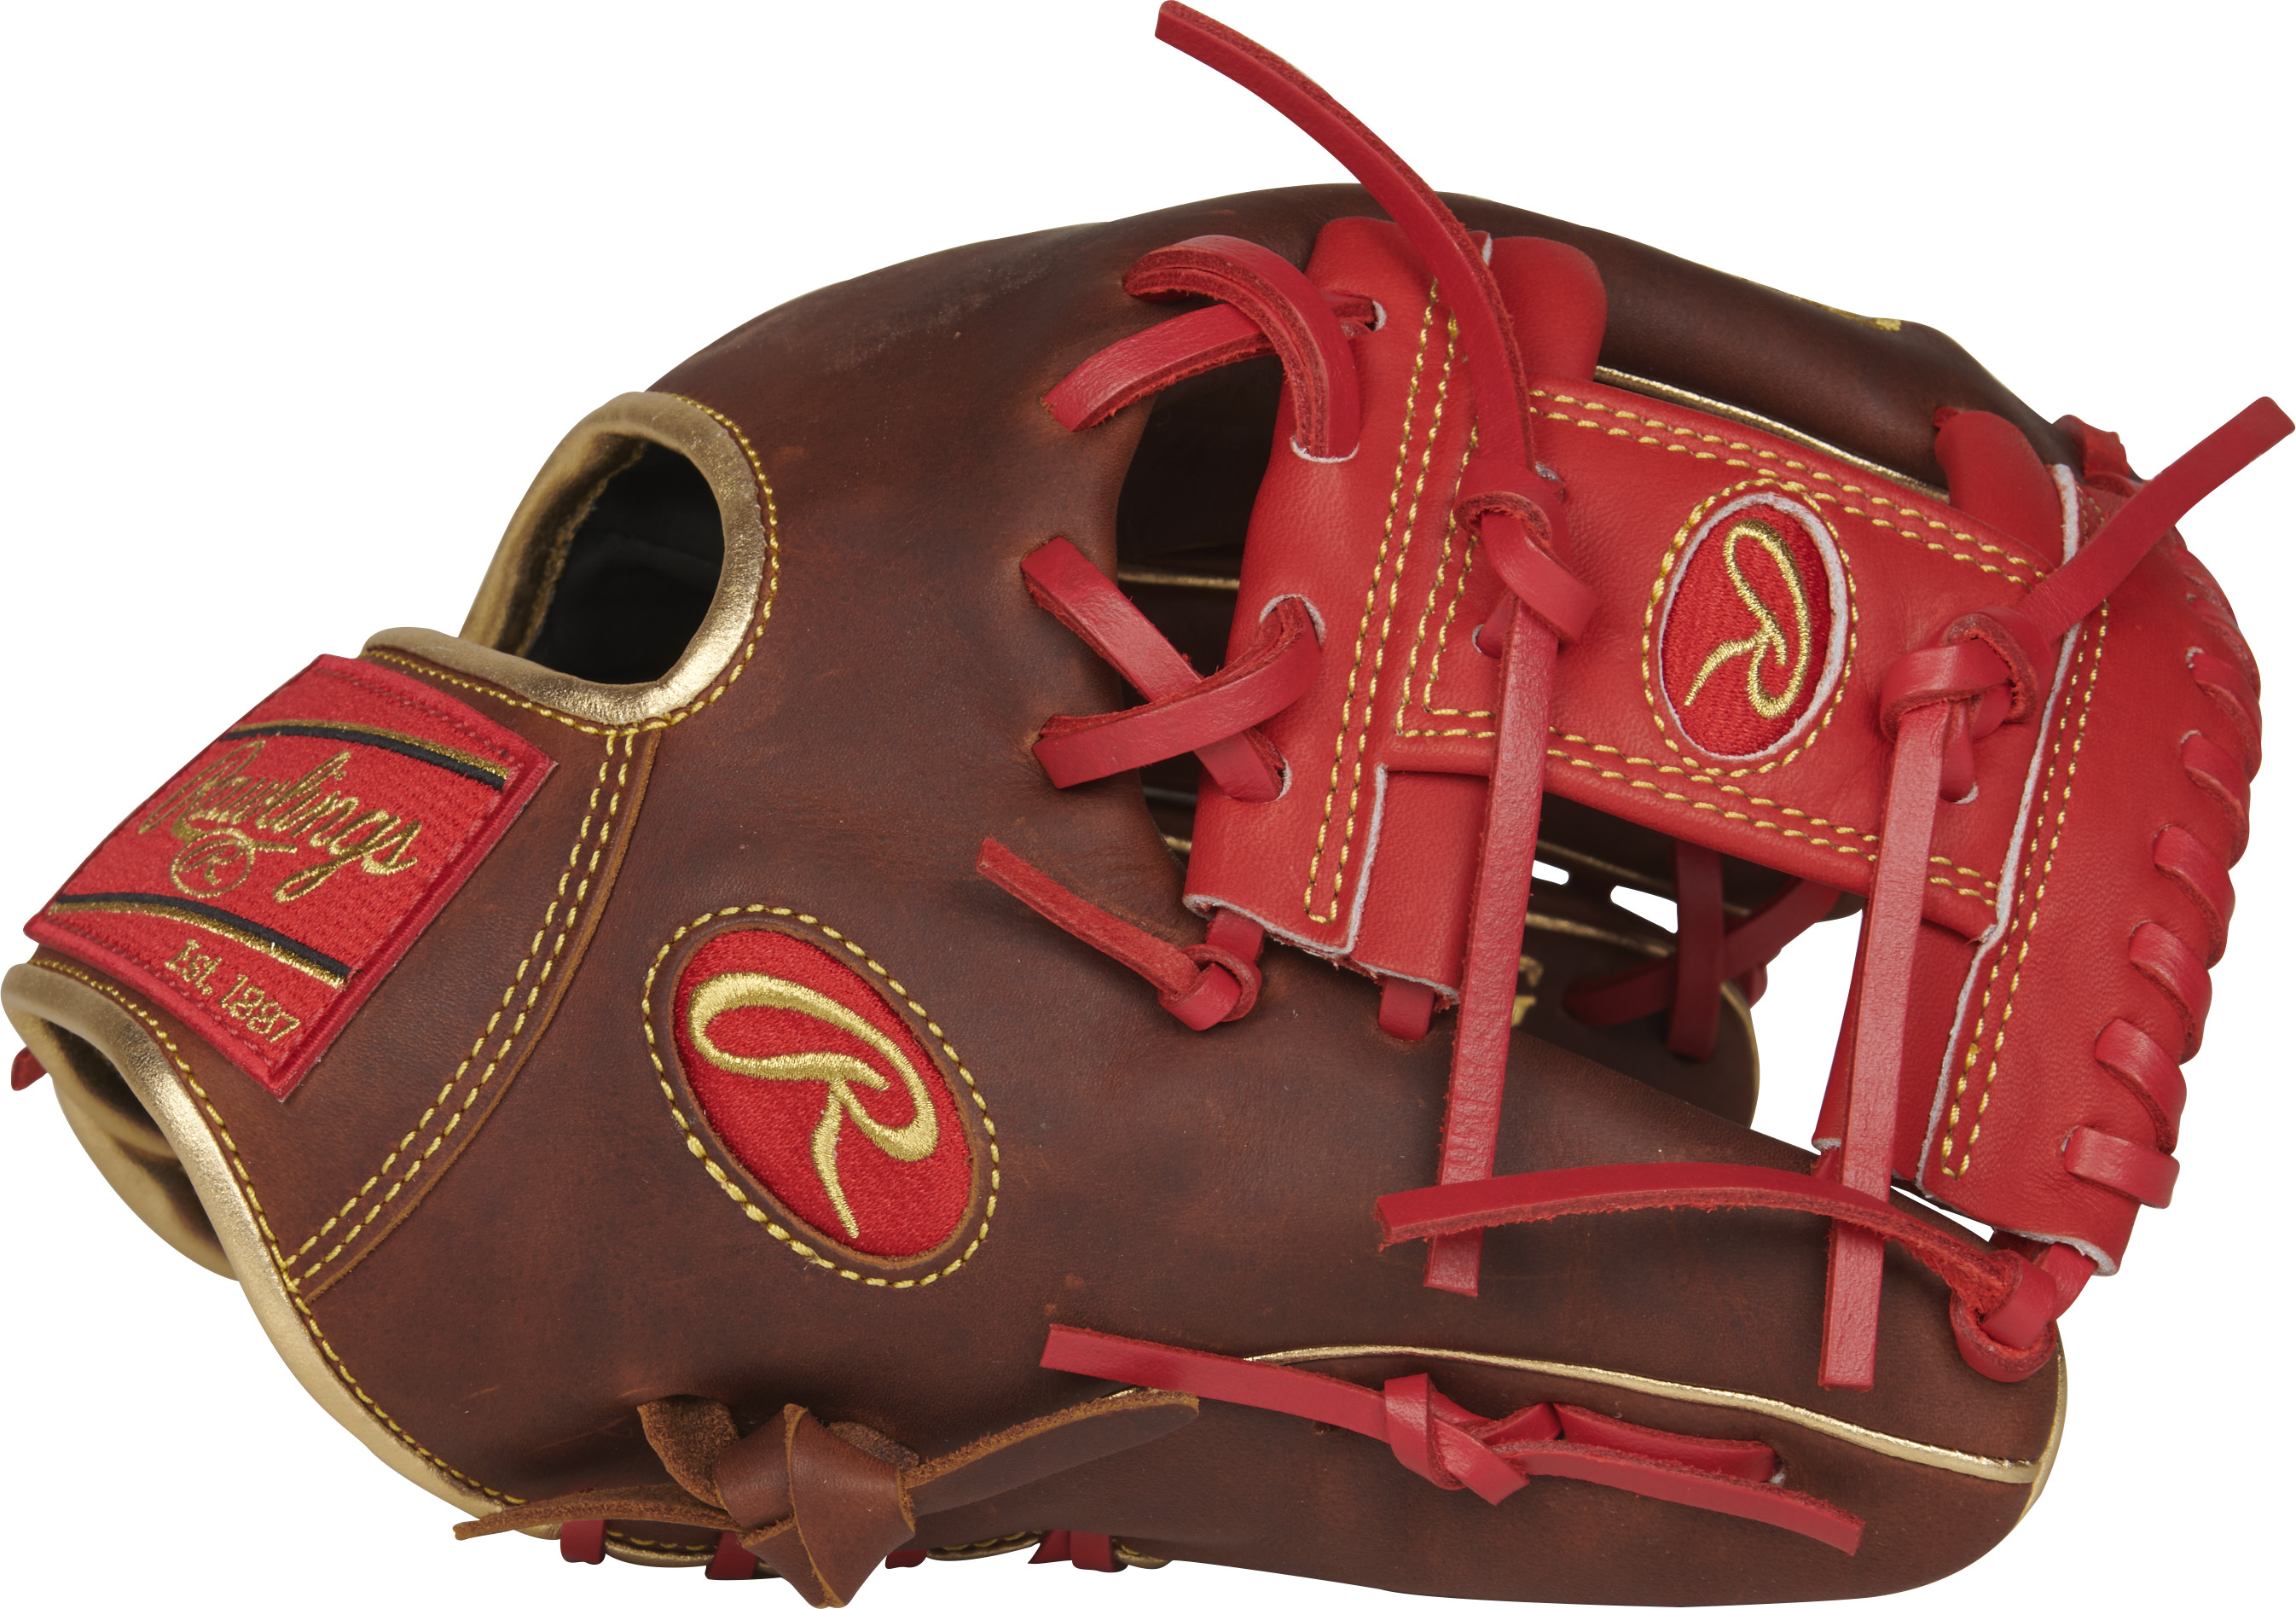 http://www.bestbatdeals.com/images/gloves/rawlings/PRO204-2TIG-3.jpg